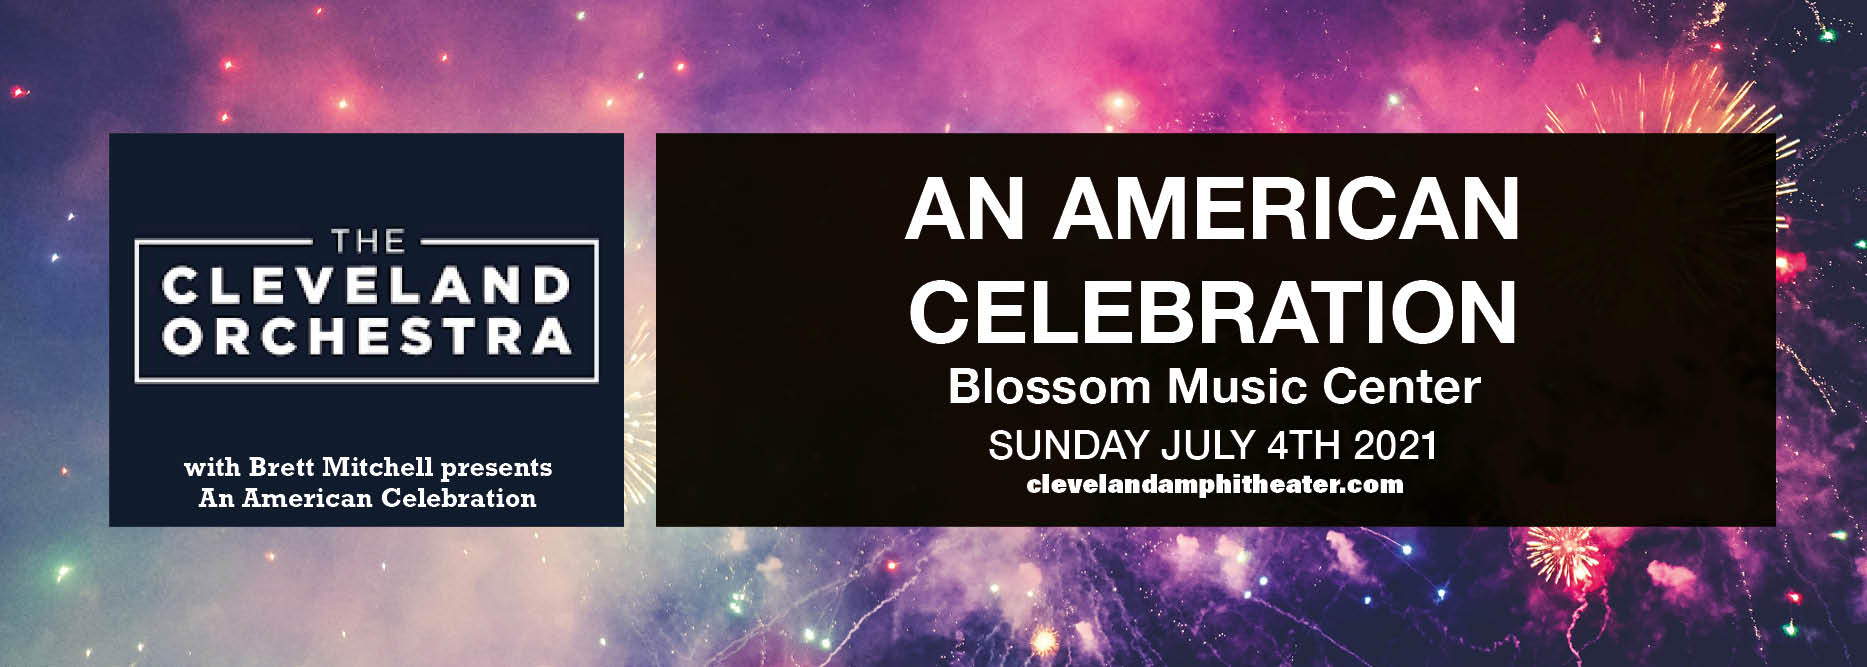 The Cleveland Orchestra: Brett Mitchell - An American Celebration at Blossom Music Center